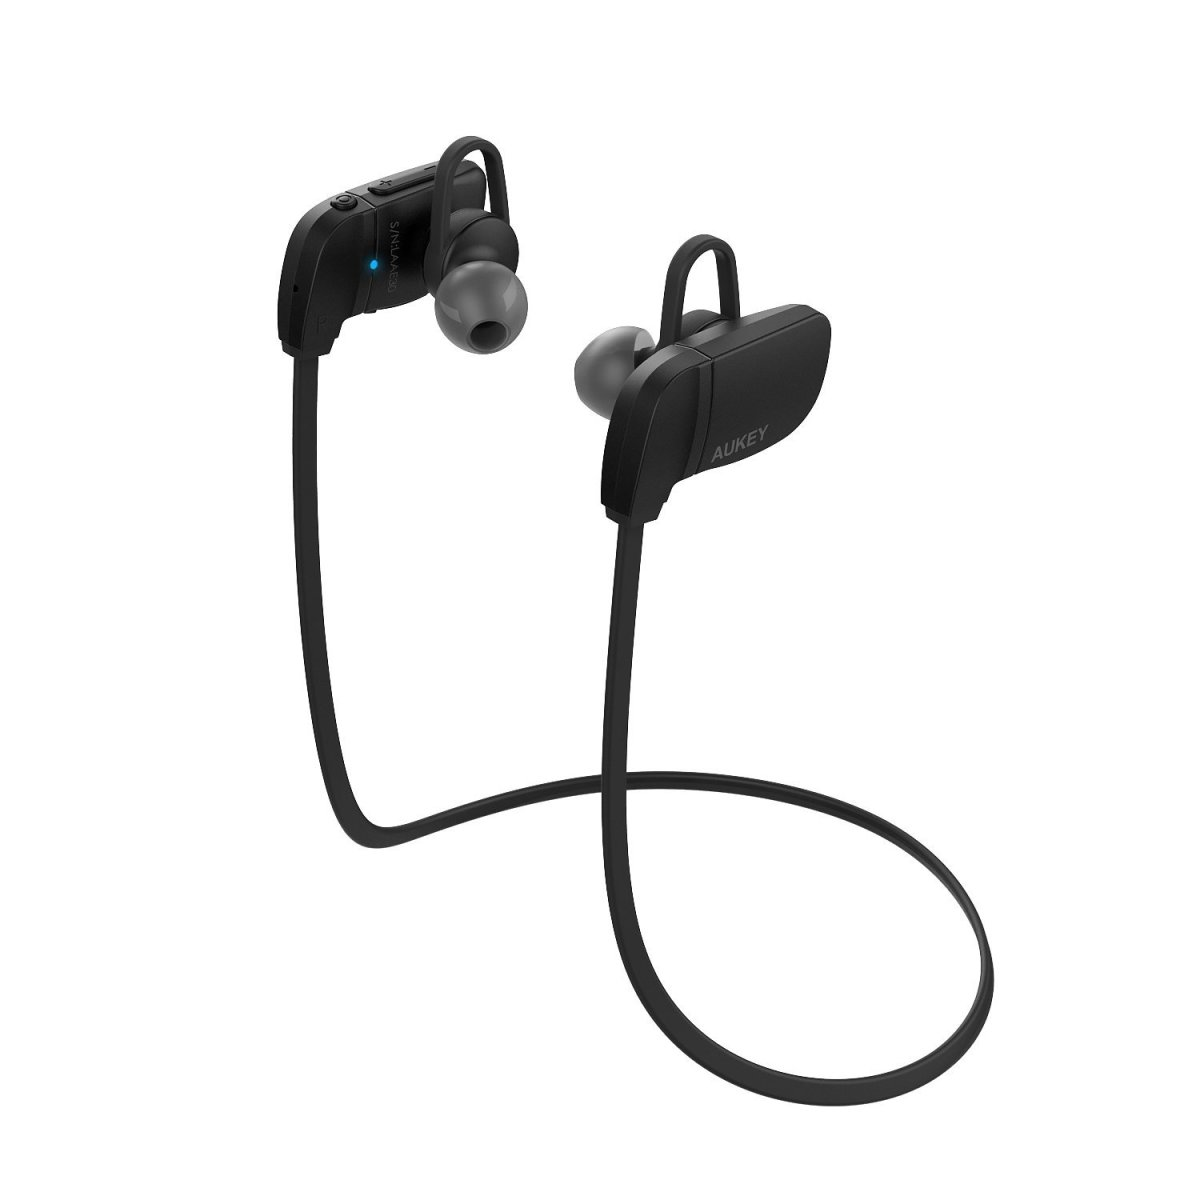 Bluetooth Iphone Spinning Gear Nuance Bluetooth Wireless Headset Bluetooth Car First Plantronics Bluetooth Pairing M70: Product Review: AUKEY Bluetooth Wireless Earbuds